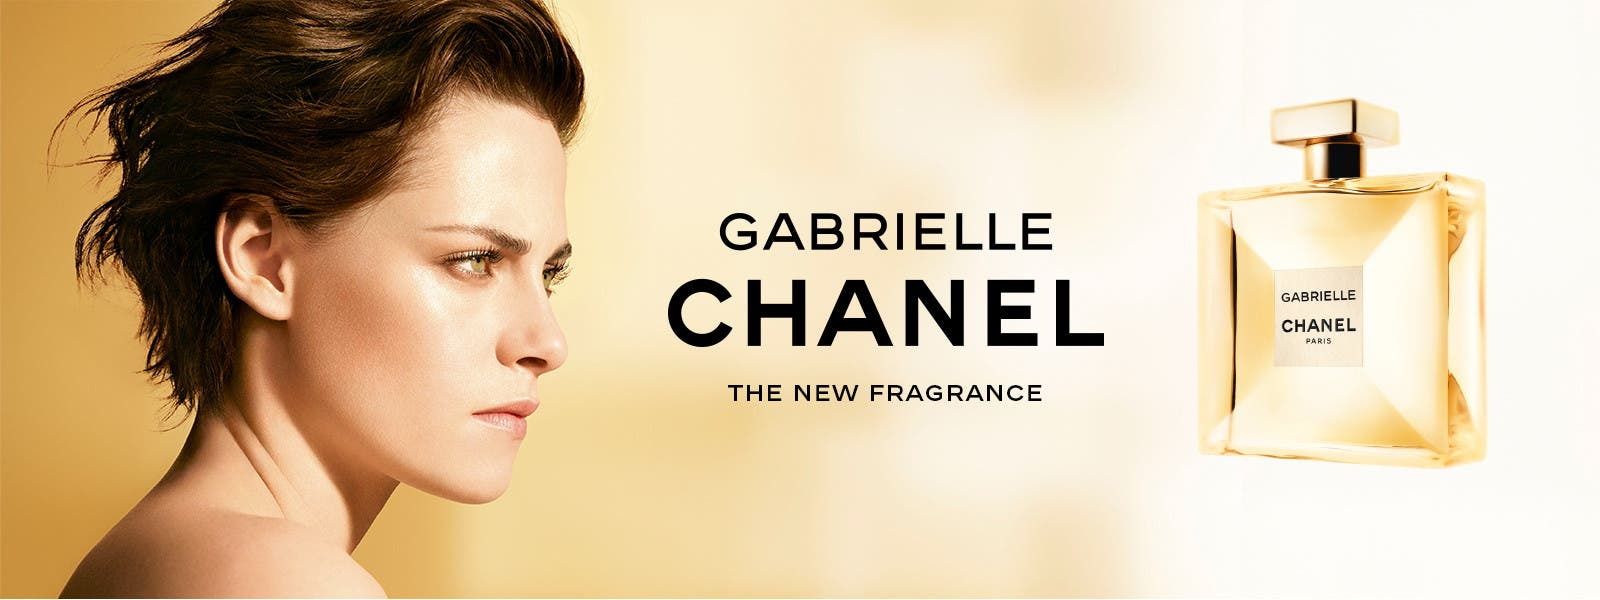 GABRIELLE CHANEL, the new fragrance.